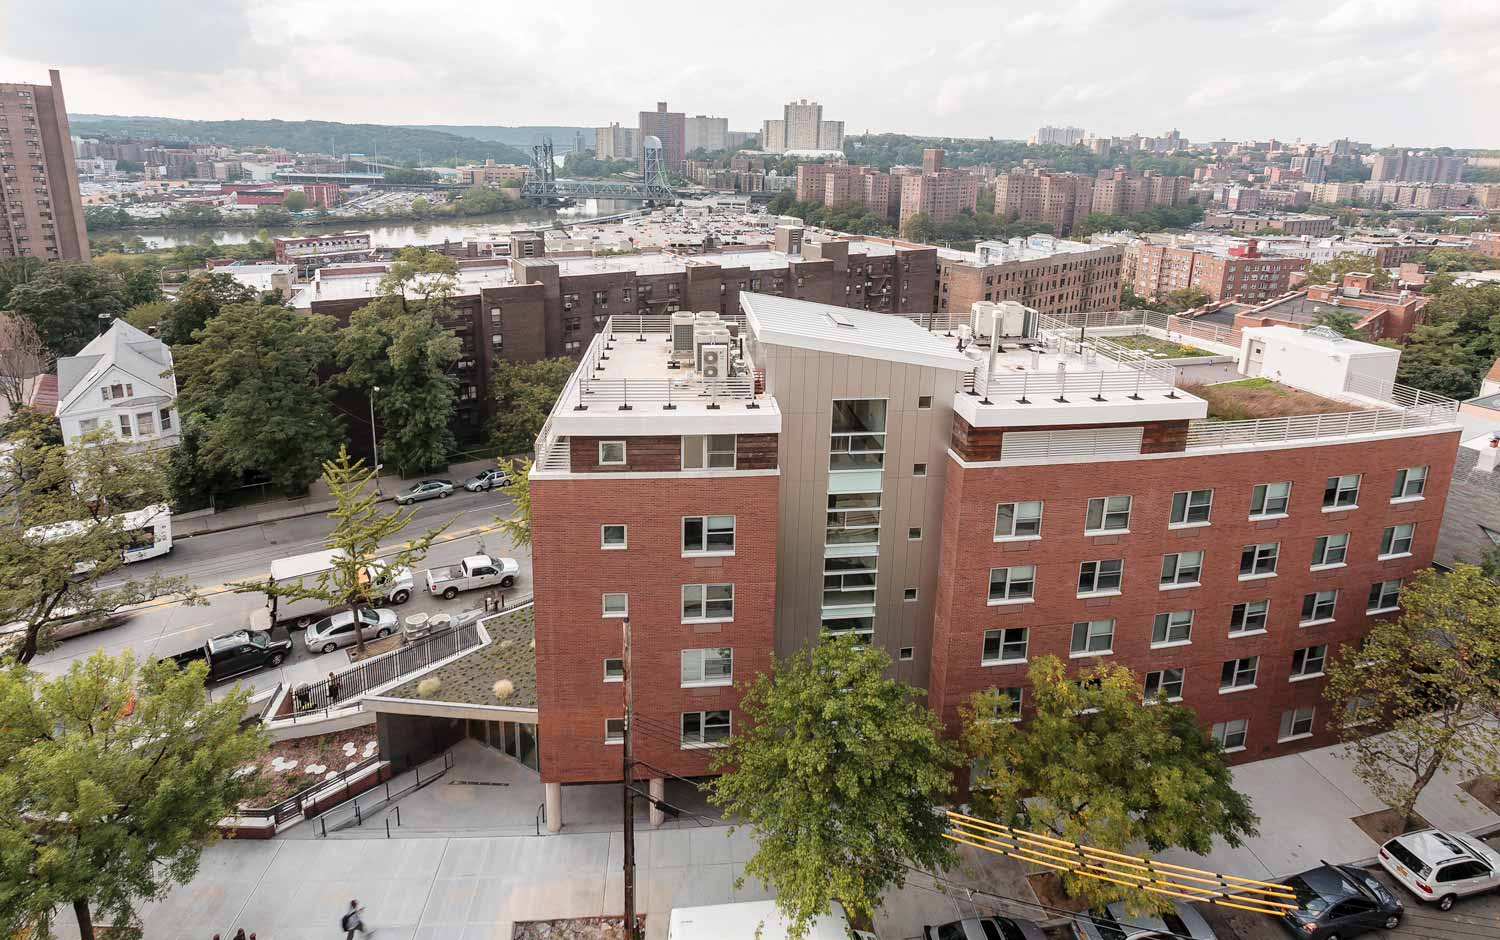 Kingsbridge Terrace Veterans' Residence offers green supportive housing to veterans in the Bronx.